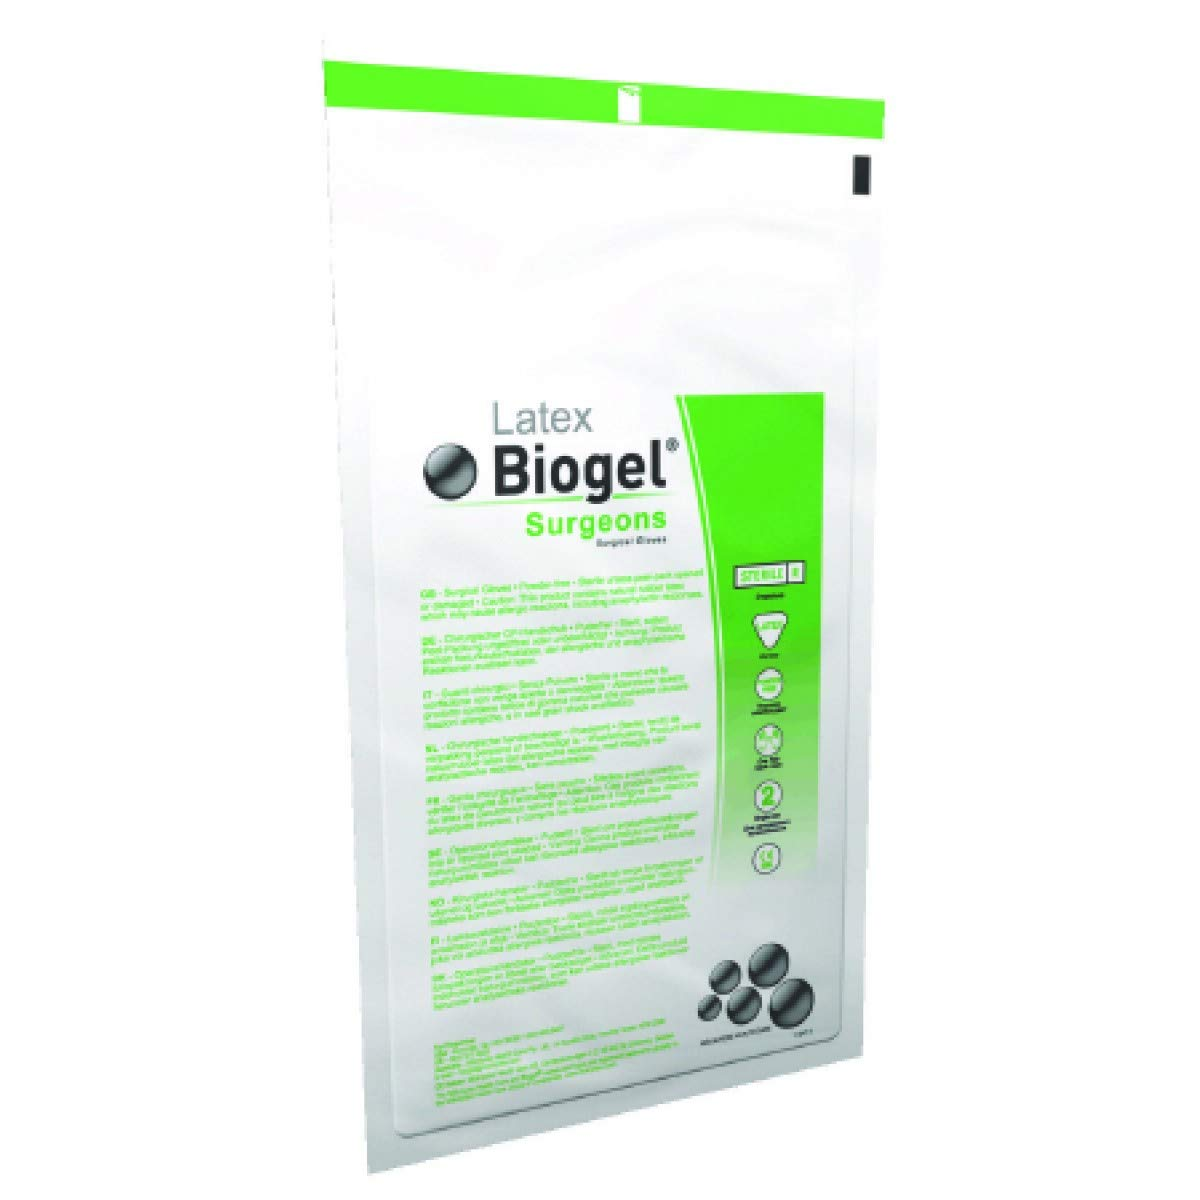 Biogel Surgeons Gloves 6 1/2 50/Bx, Molnlycke Healthcare (Regent) (30465) by Direct Inc (Image #1)